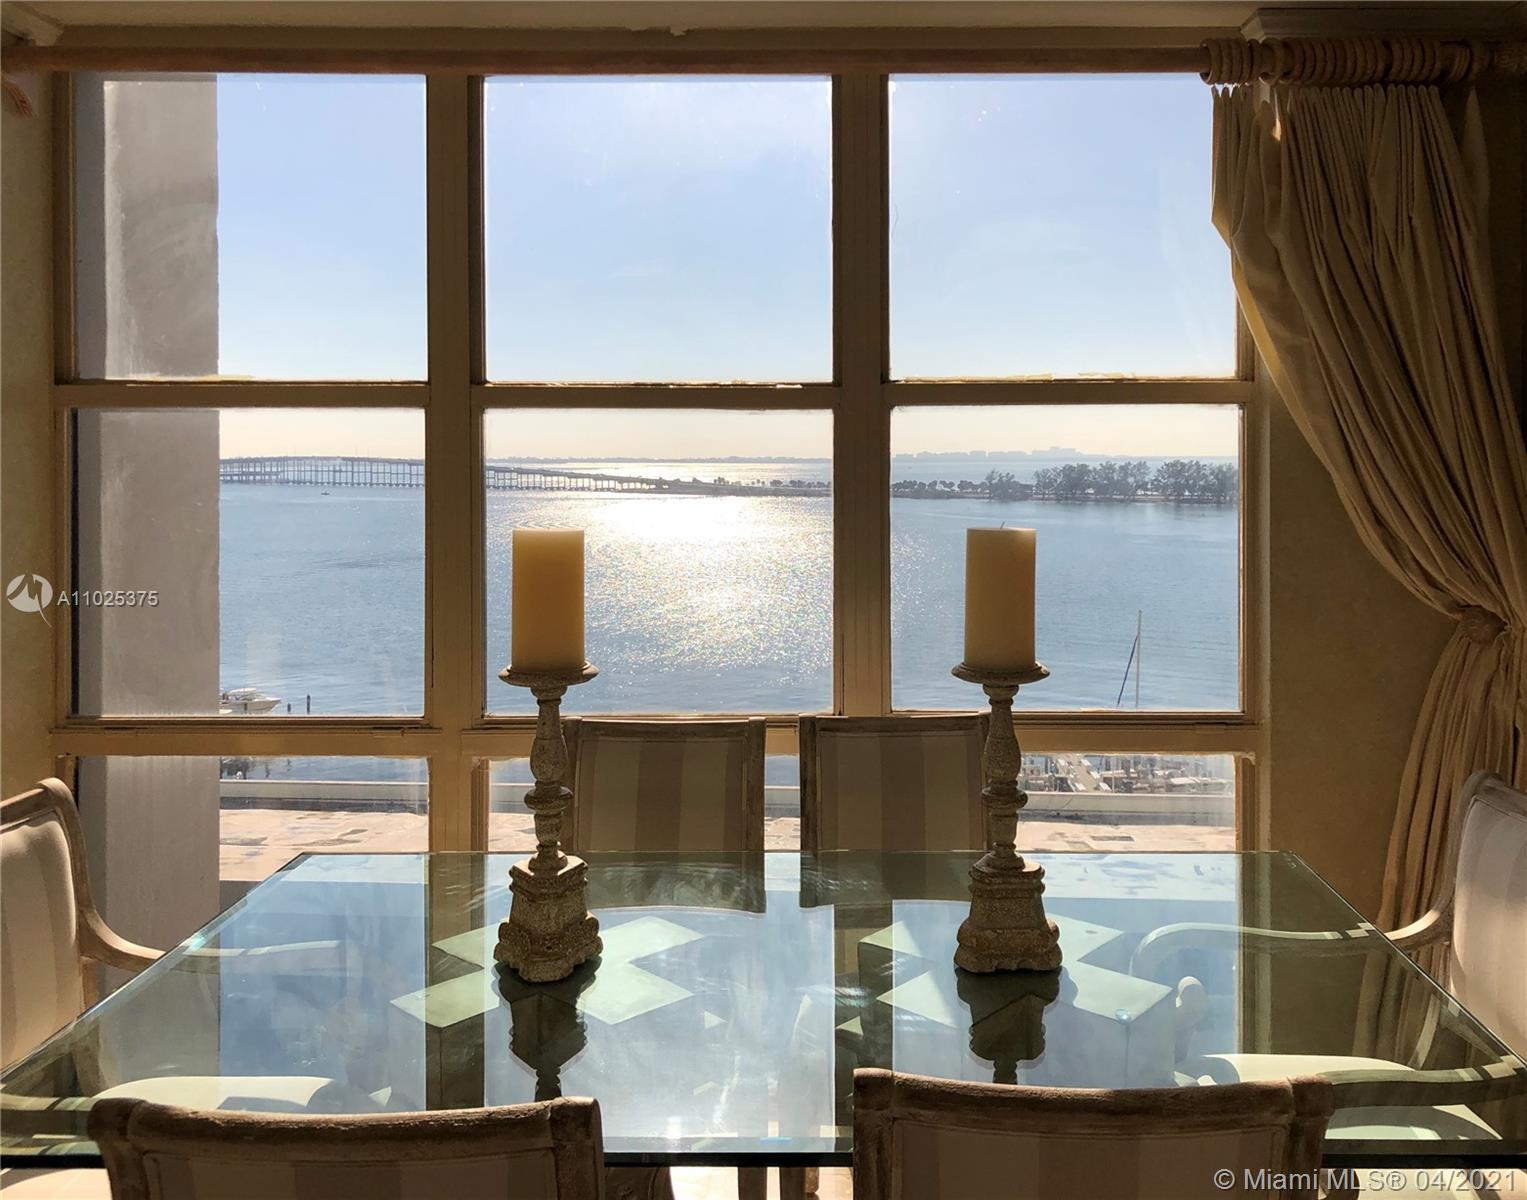 Rarely available corner unit, breathtaking bay and marina views. 3 bedrooms, 2.5 baths, with an encl